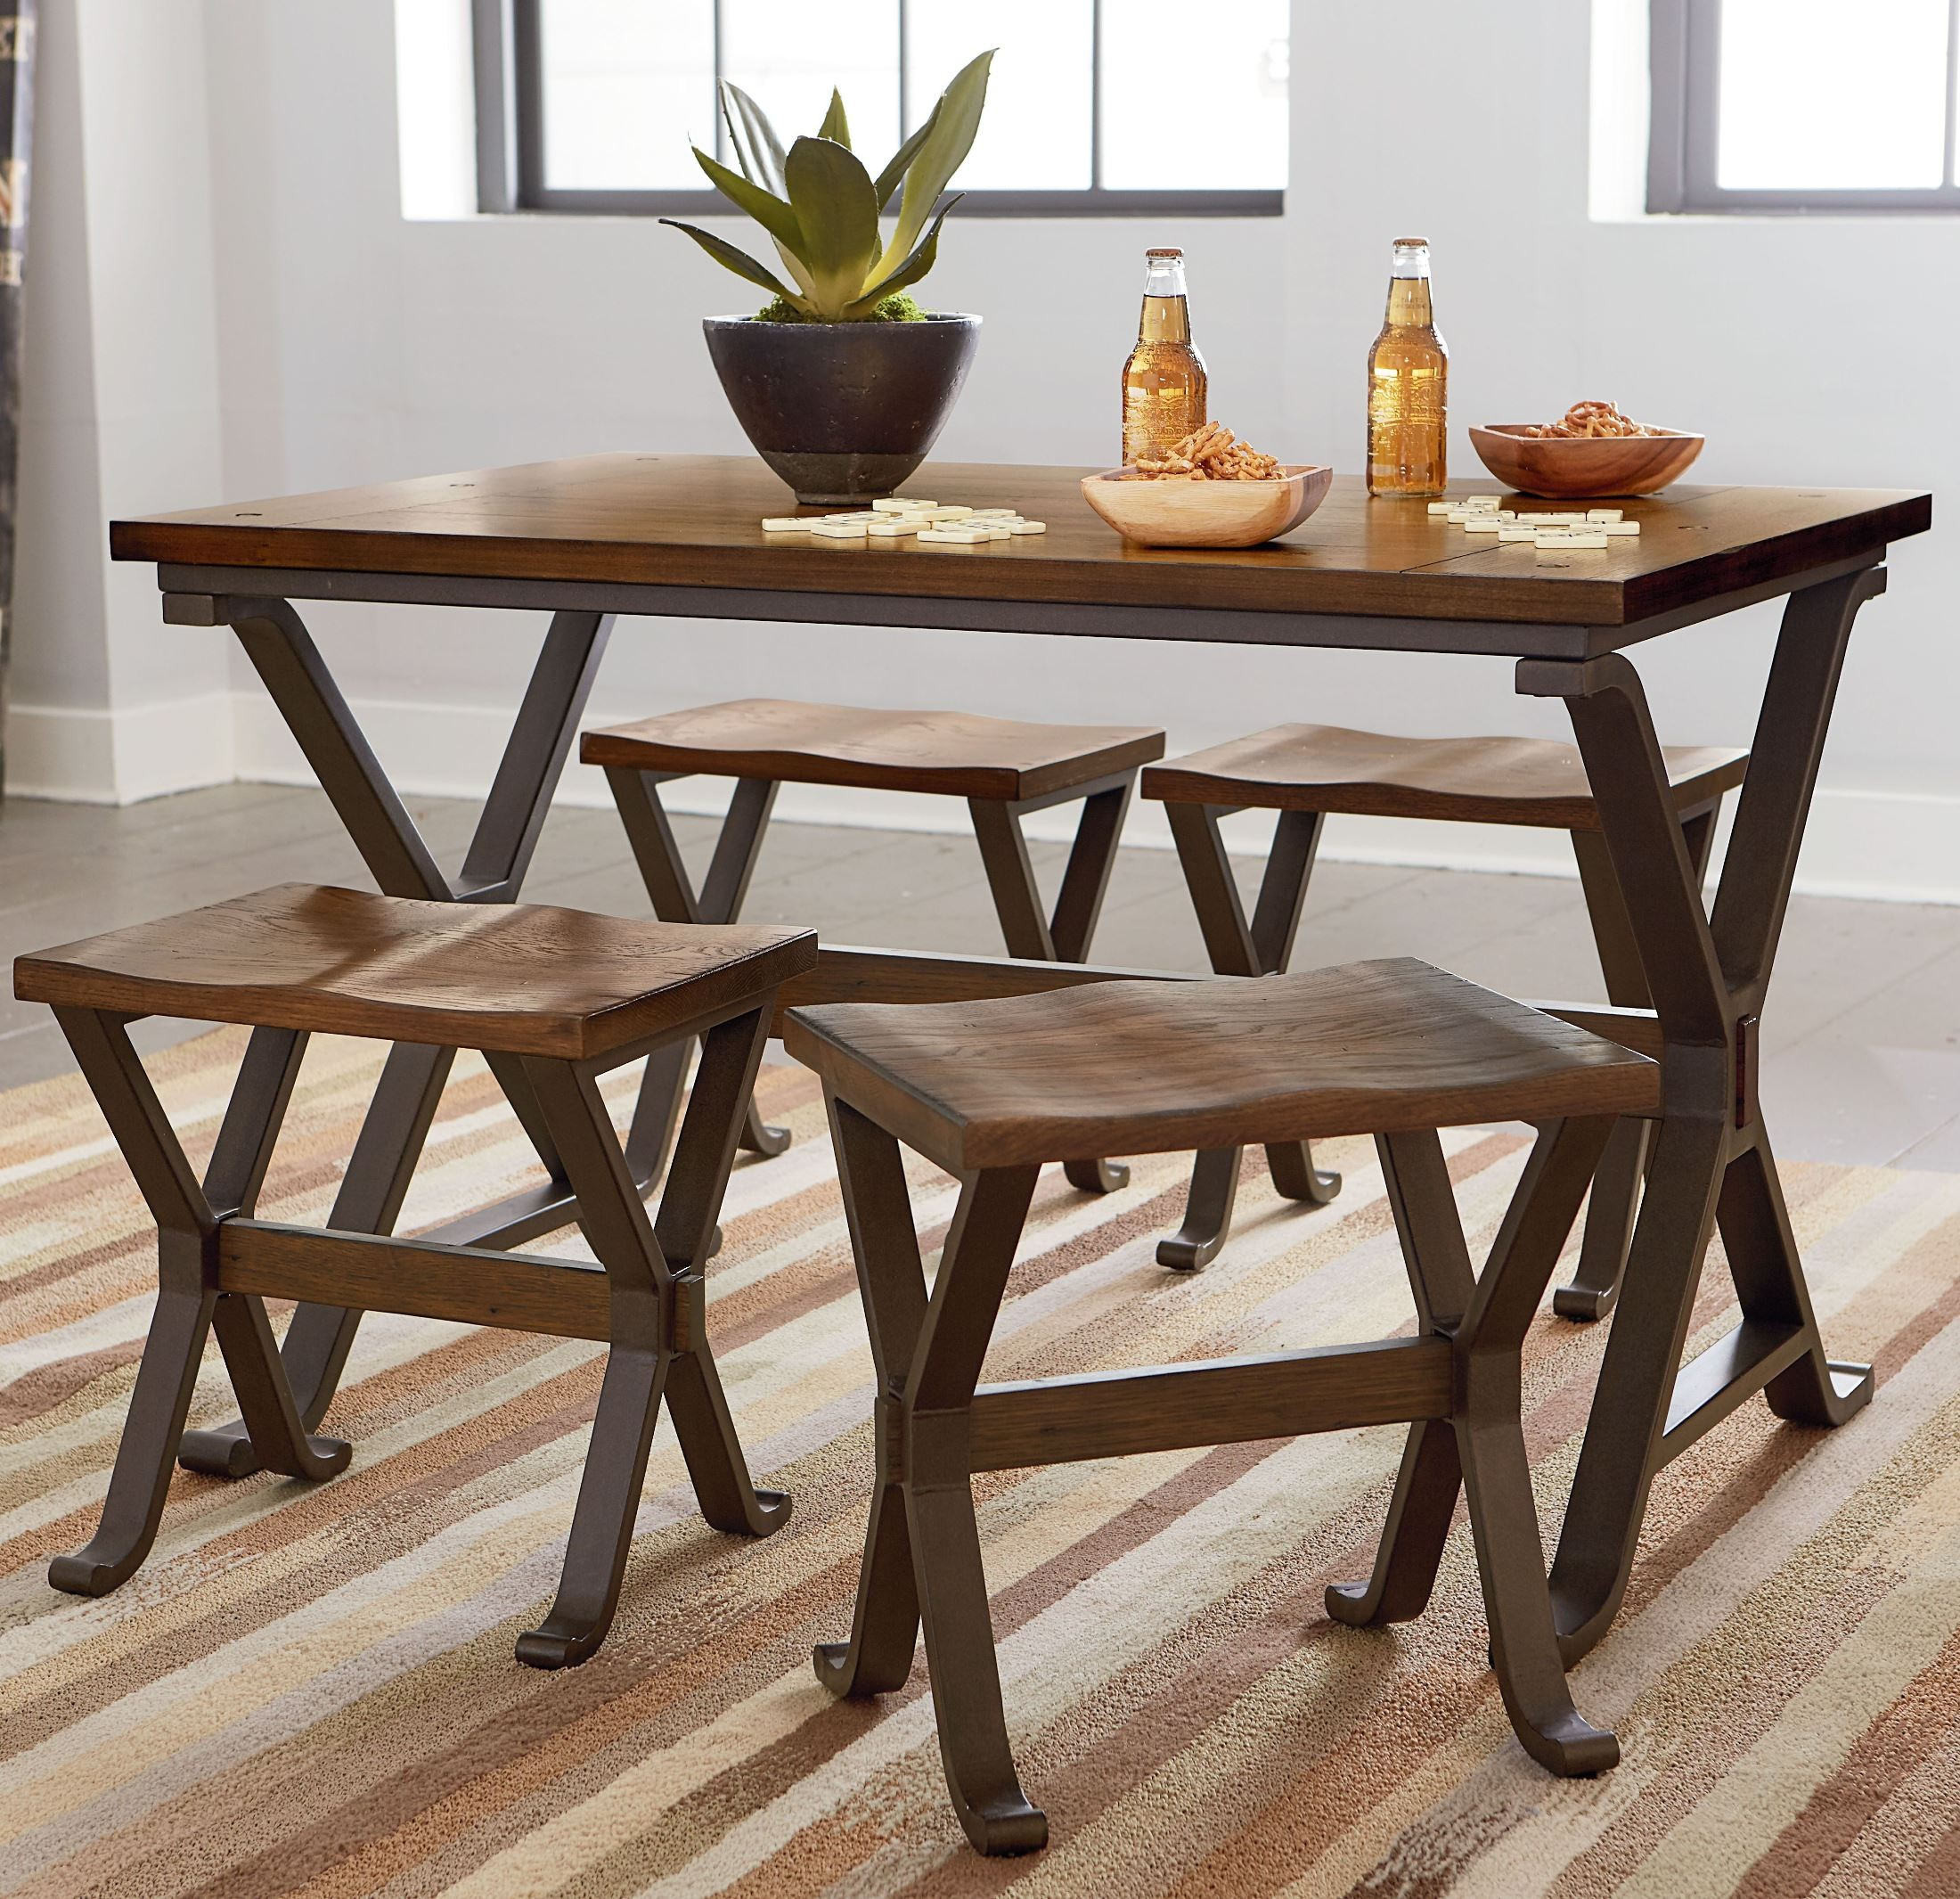 Standard Furniture Cambria Rectangular White Wood And: Reynolds Rustic Tobacco Brown Rectangular Trestle Dining